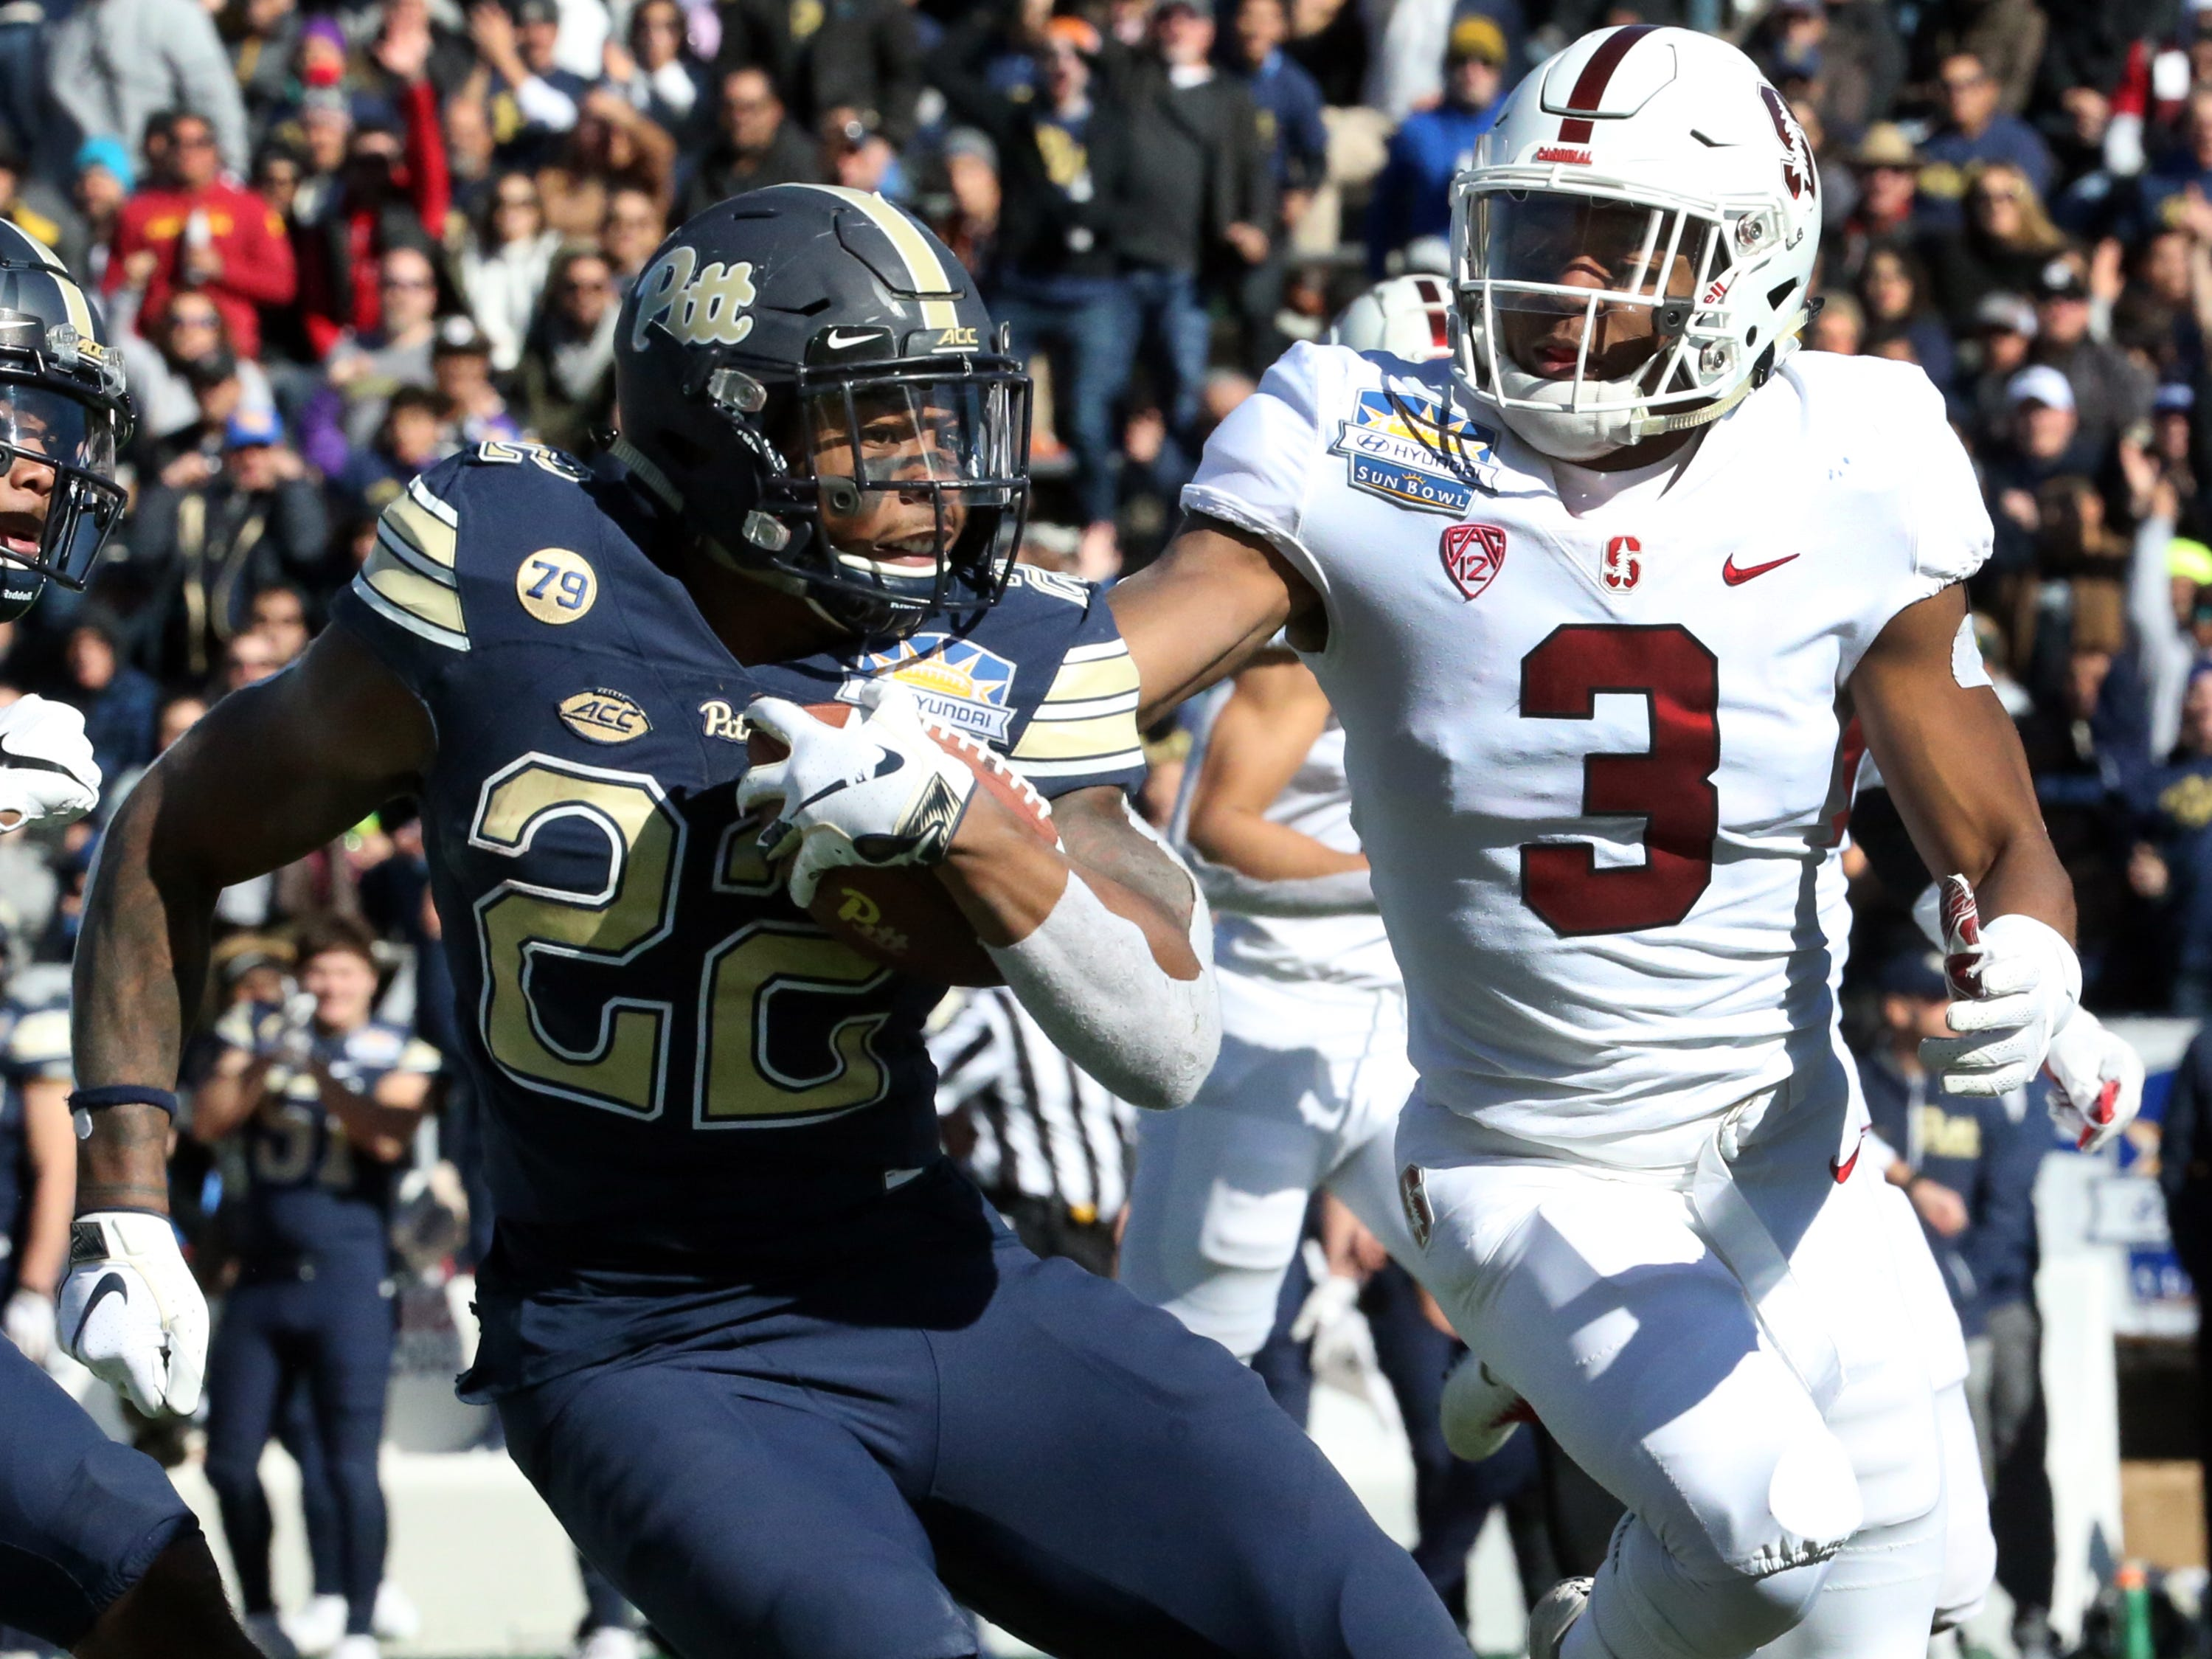 Sun Bowl 2018 live updates: Follow along as Pittsburgh takes on Stanford football